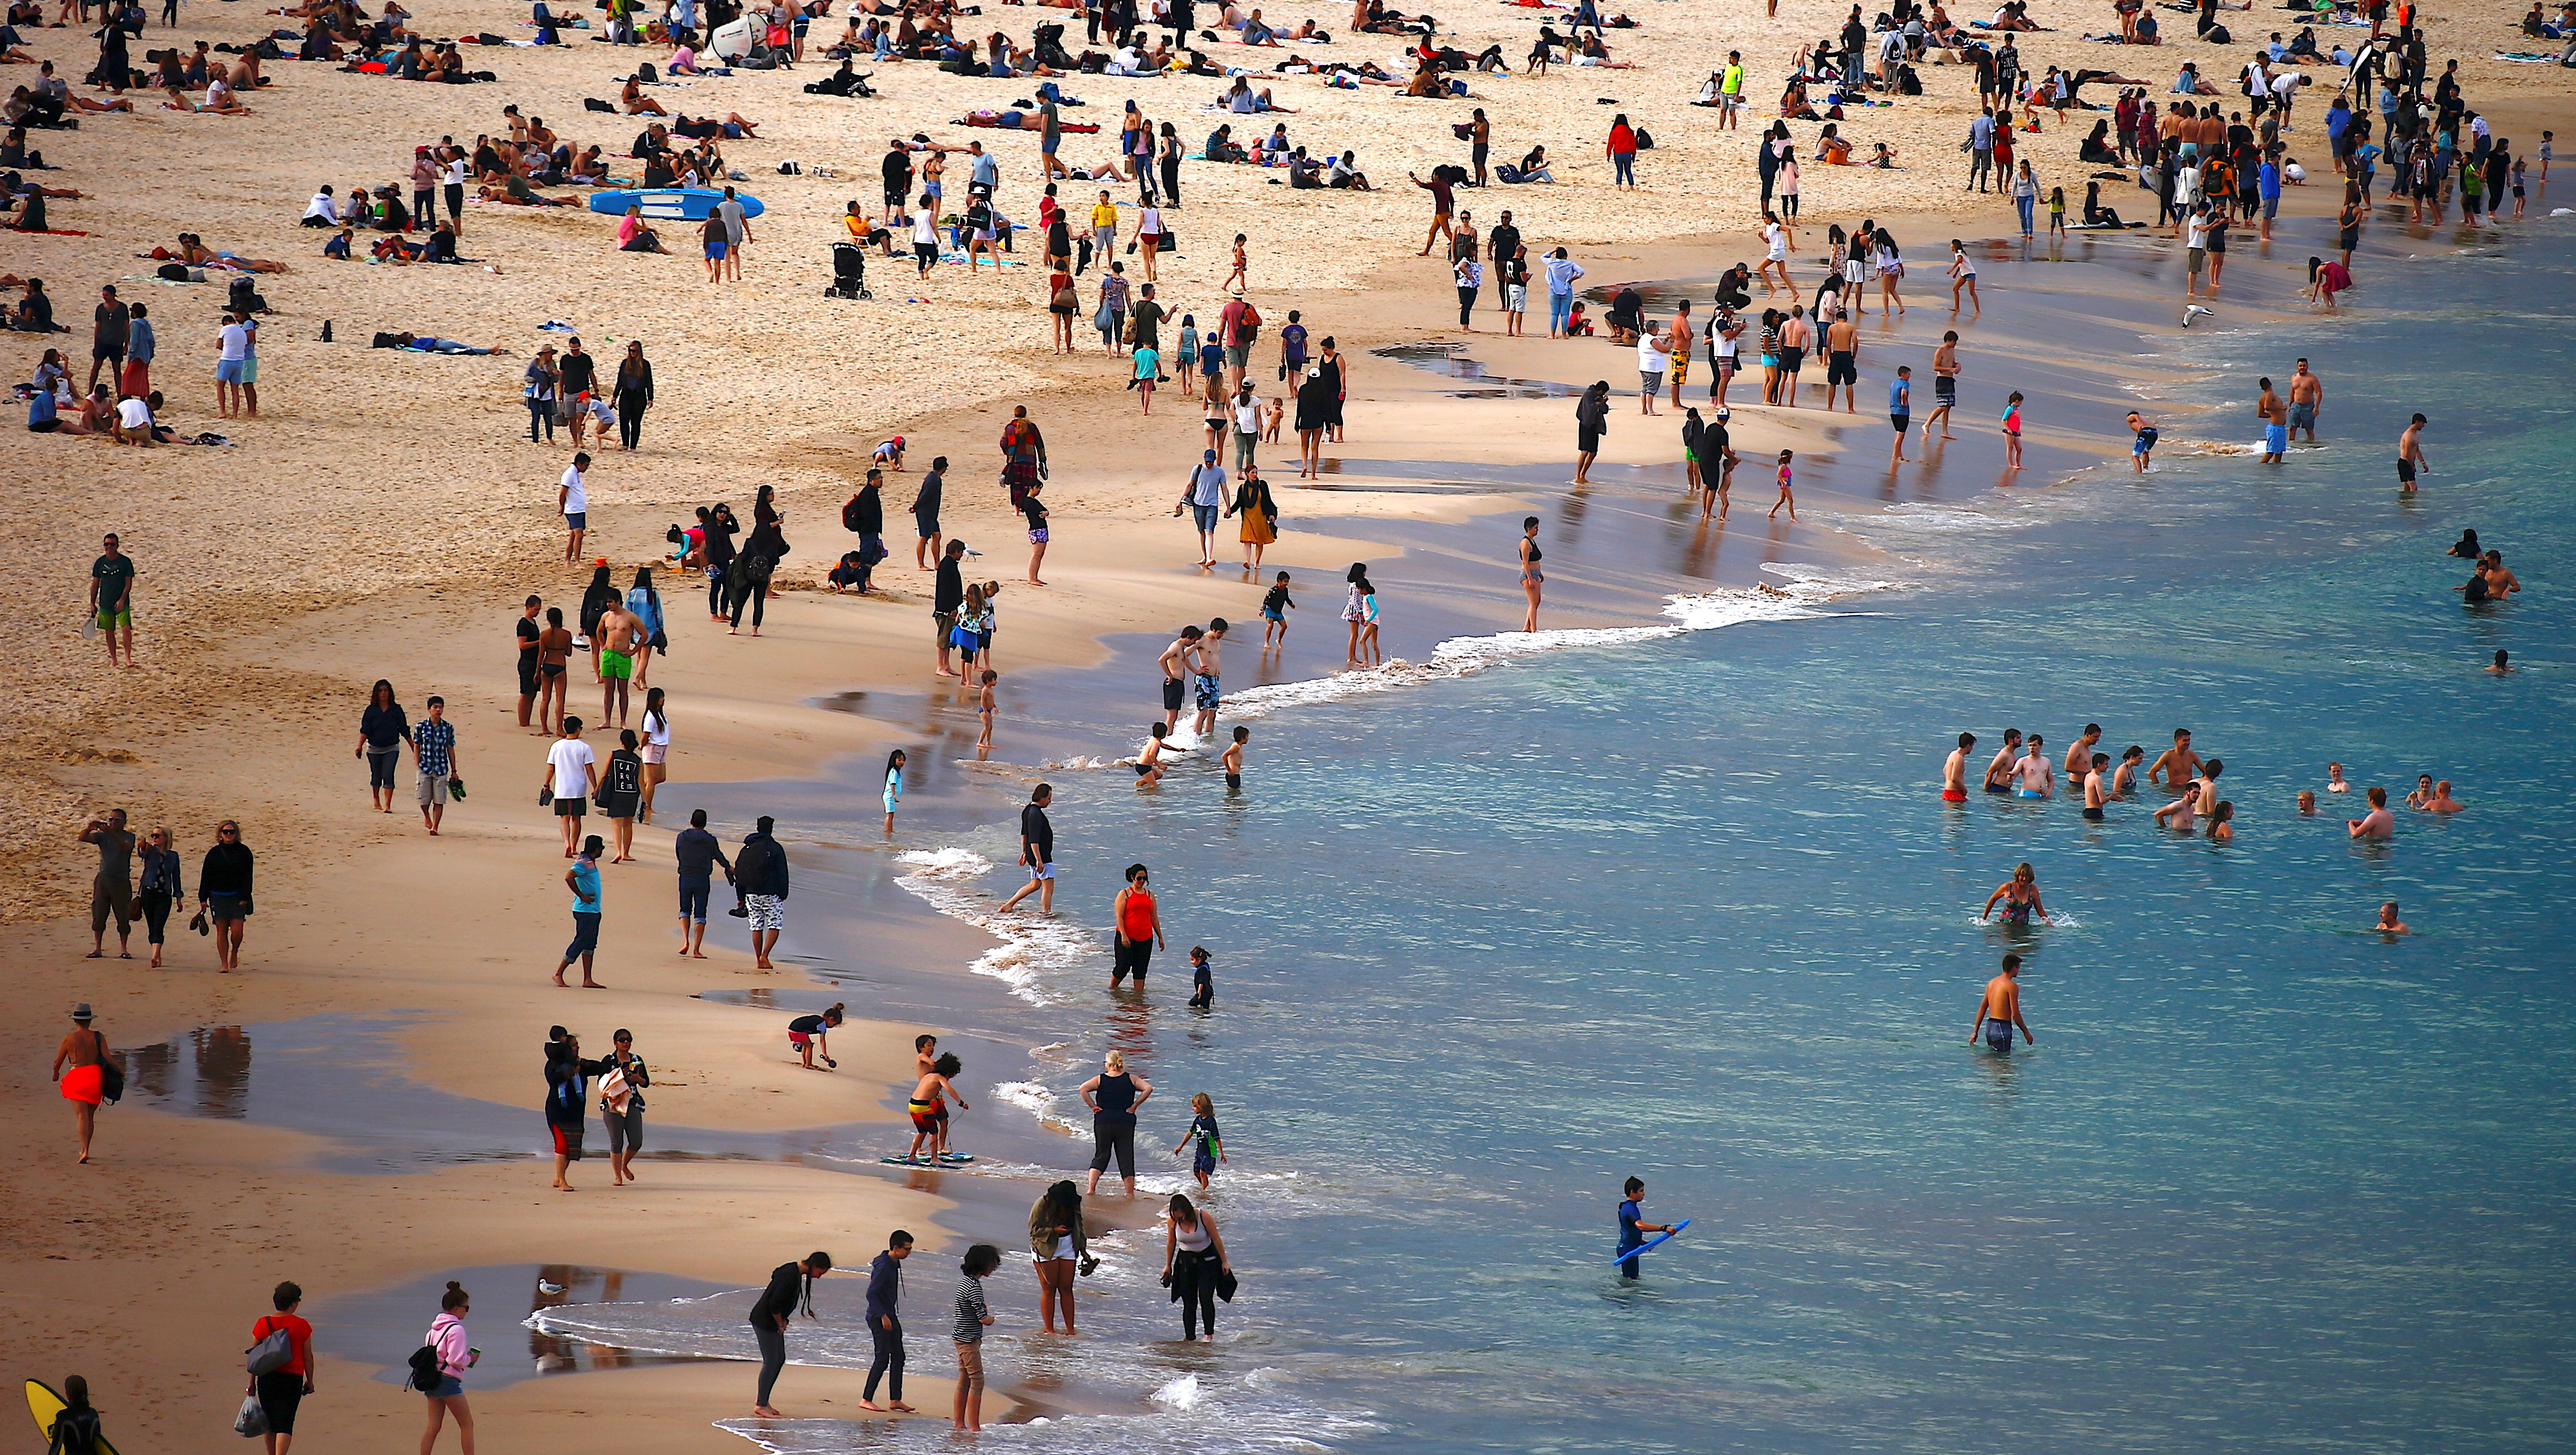 Beachgoers swim and stand on the edge of the water at Sydney's Bondi Beach on a winter day in Australia